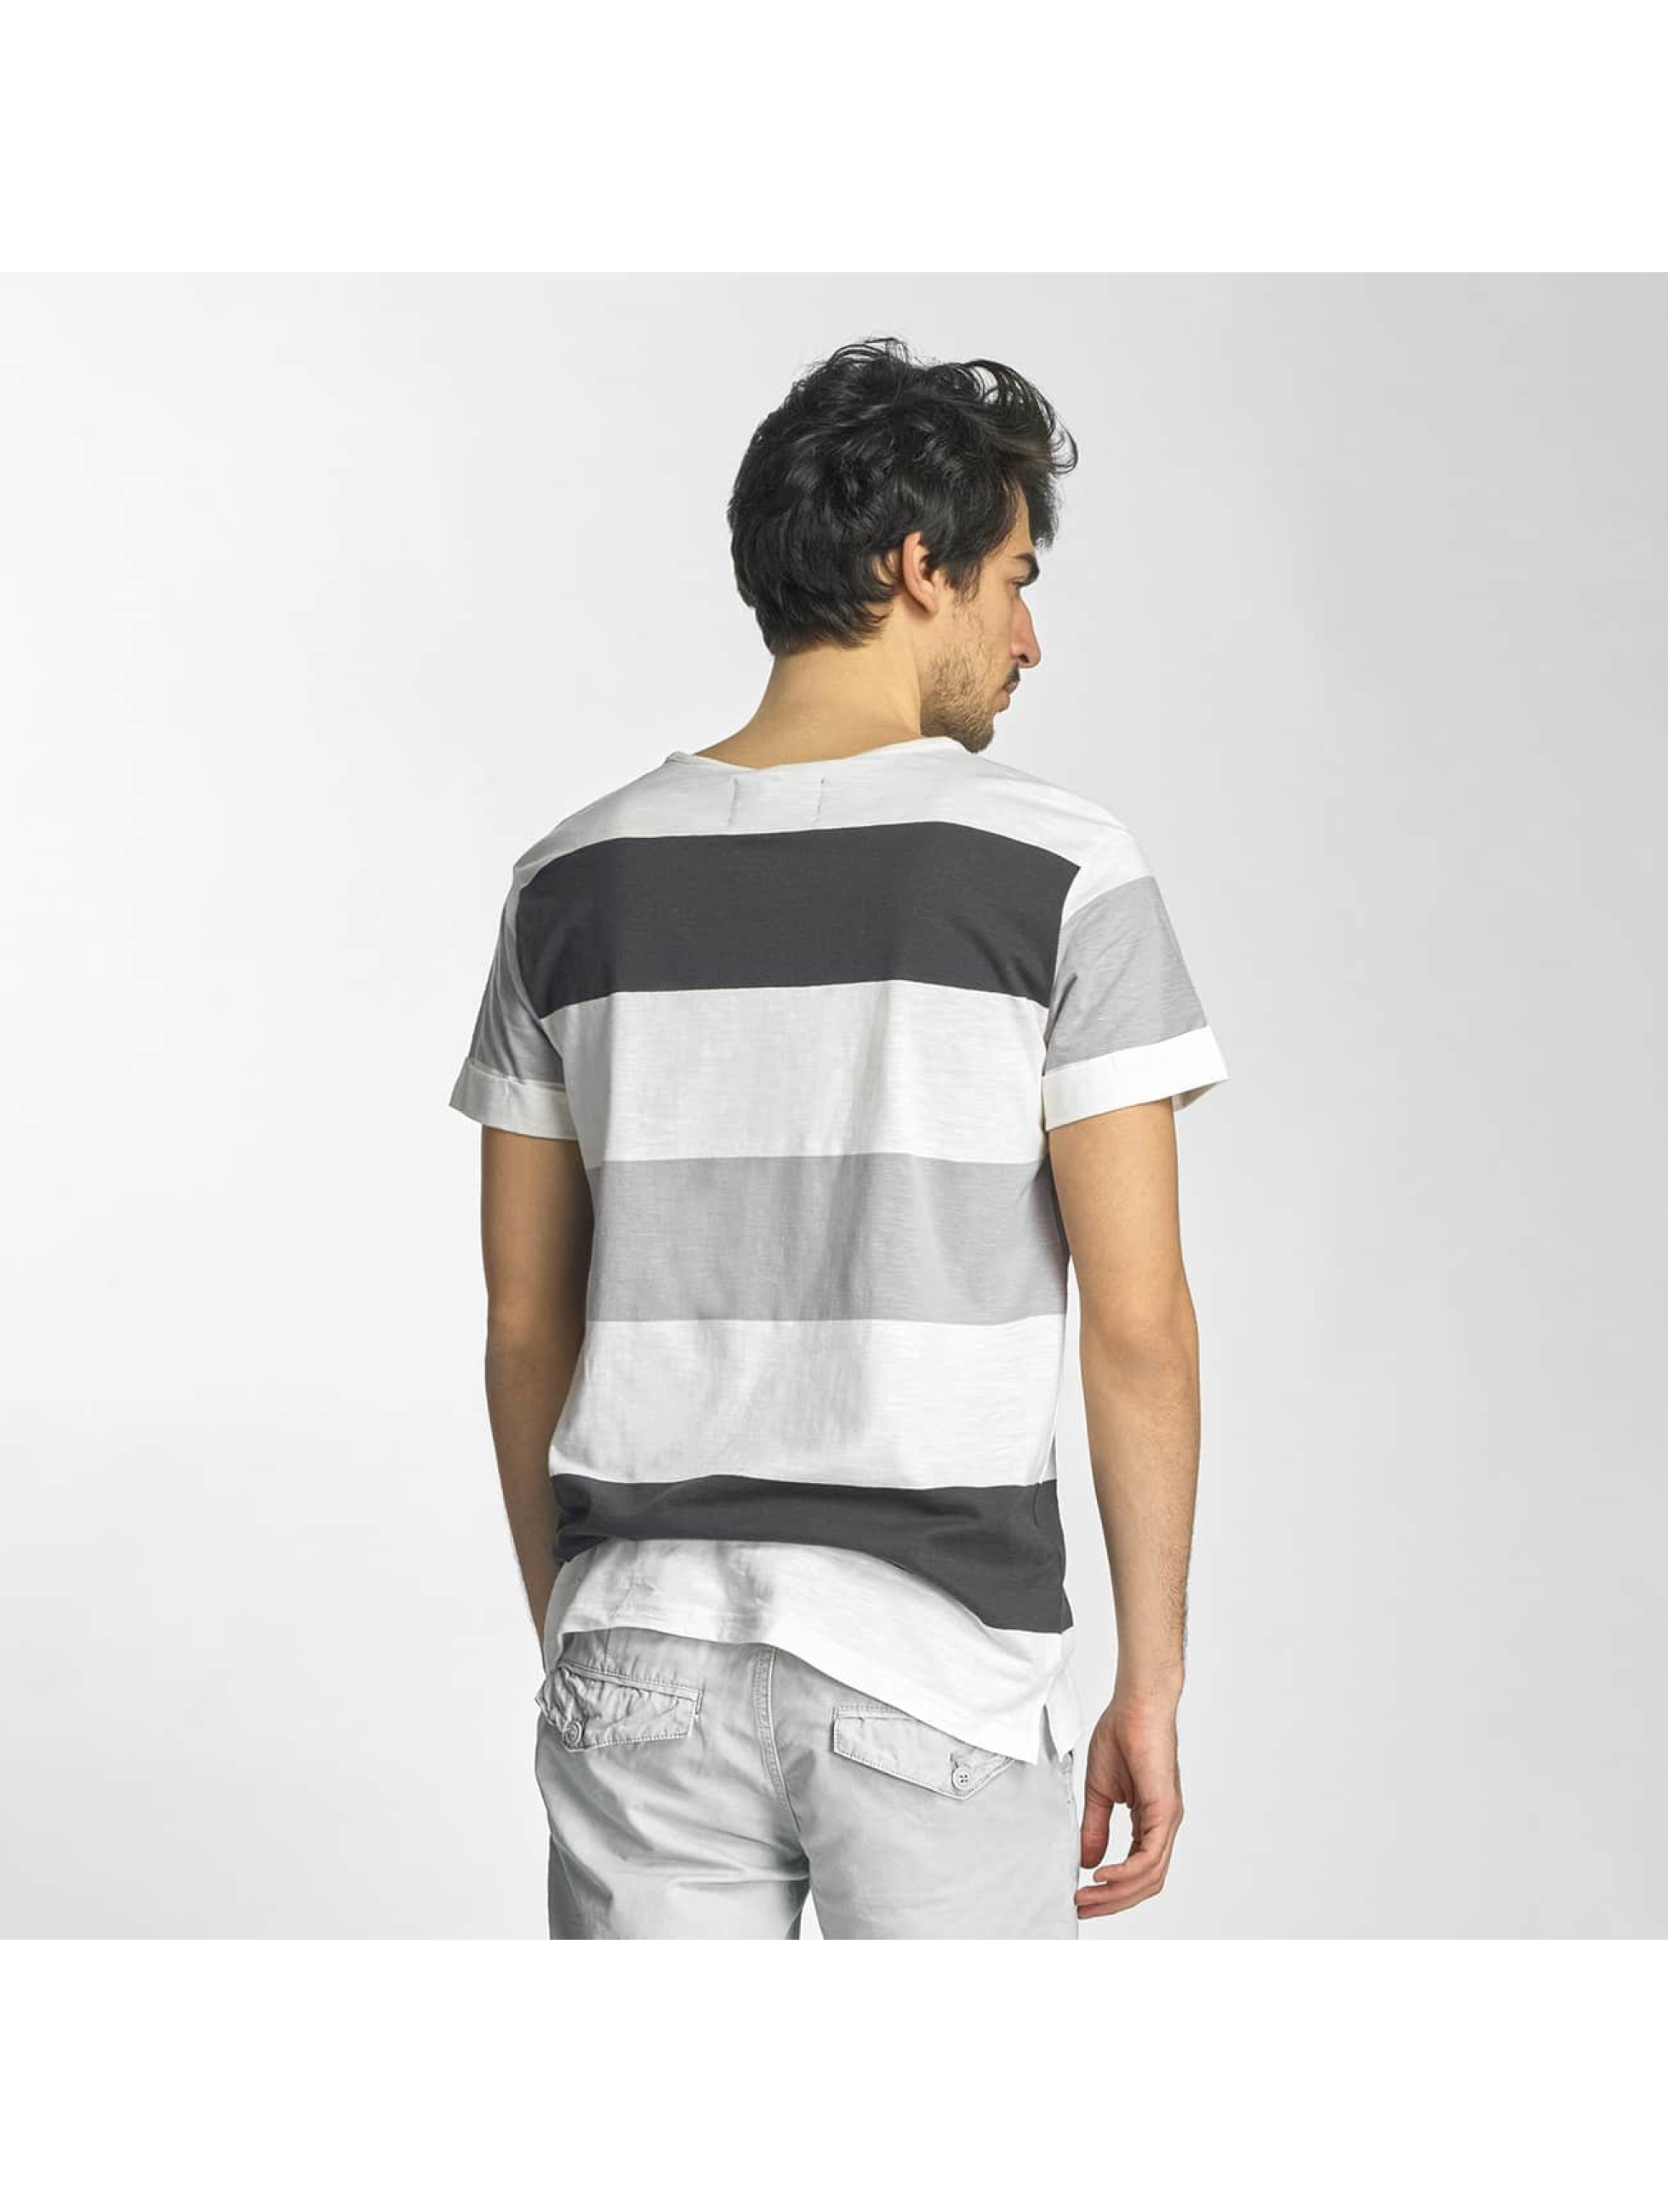 Sky-Rebel-Uomini-Maglieria-T-shirt-Stripes